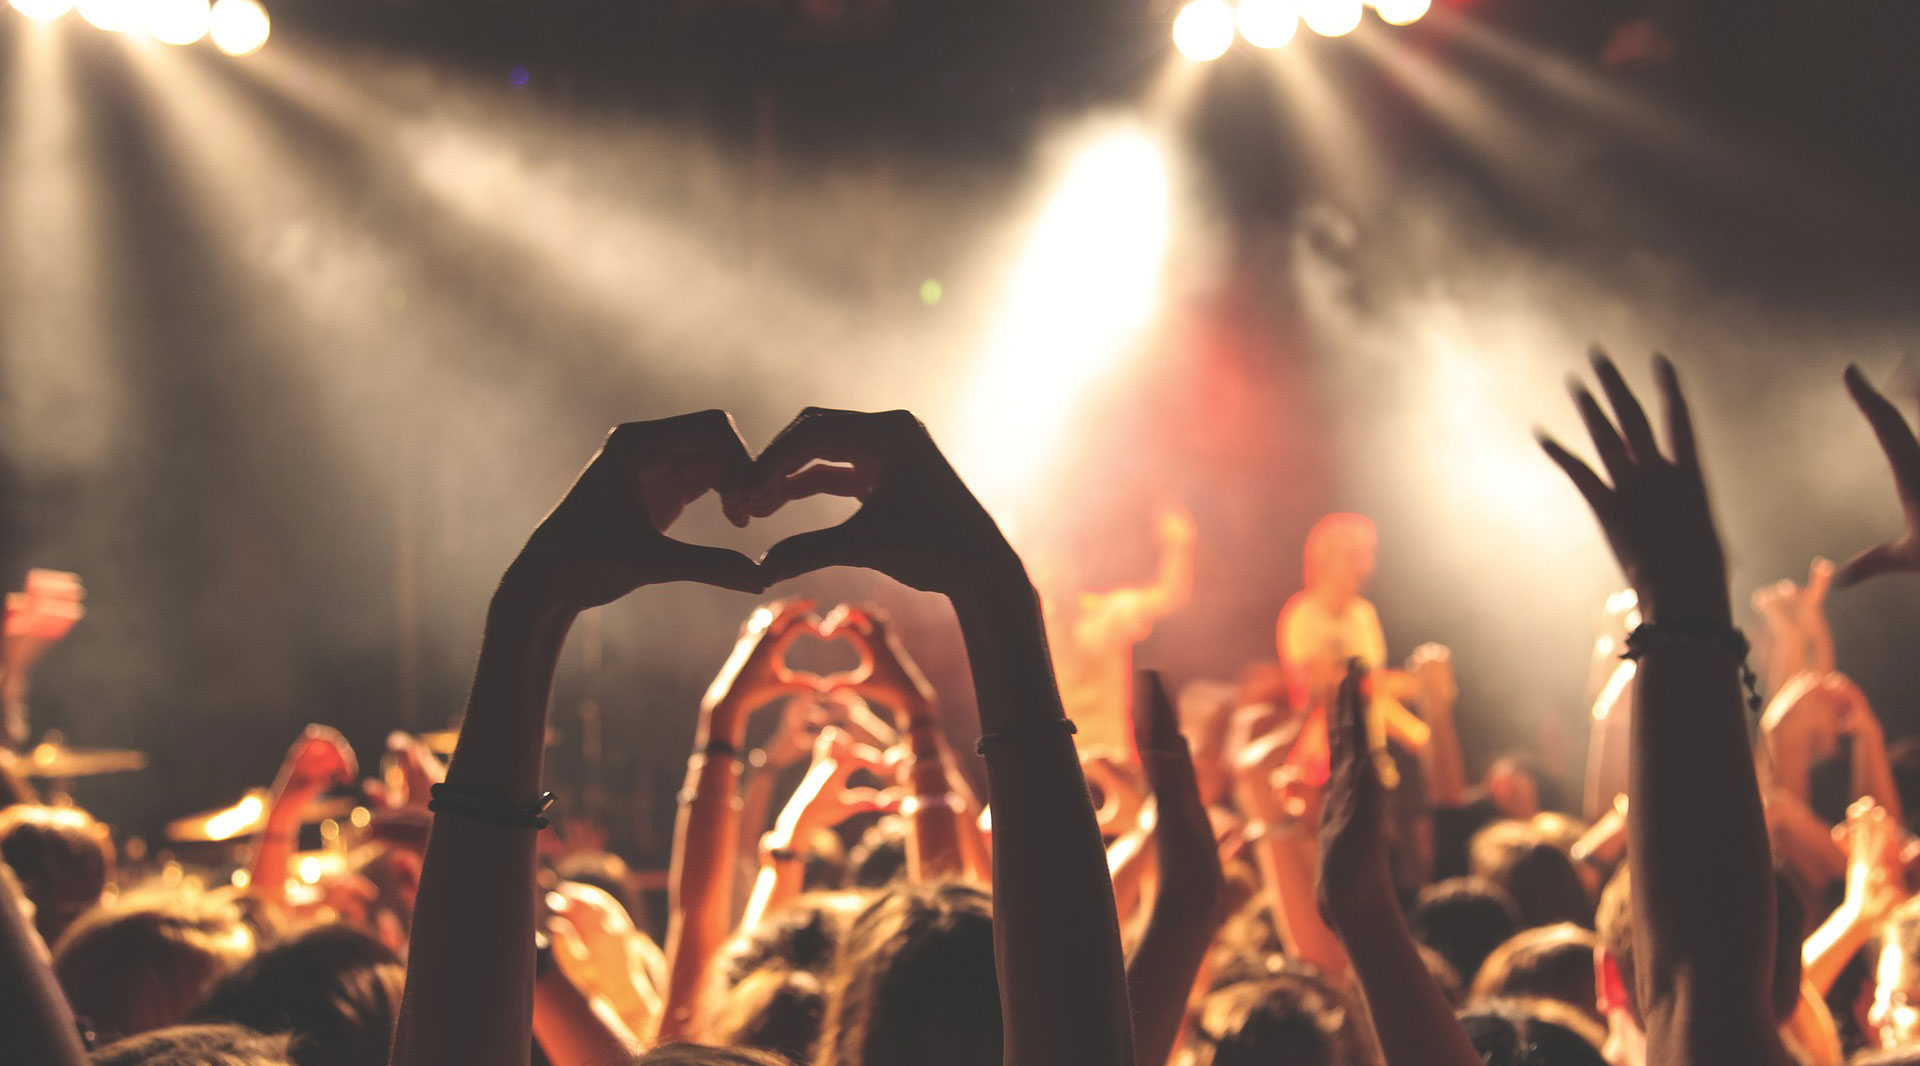 Heart gesture at a concert